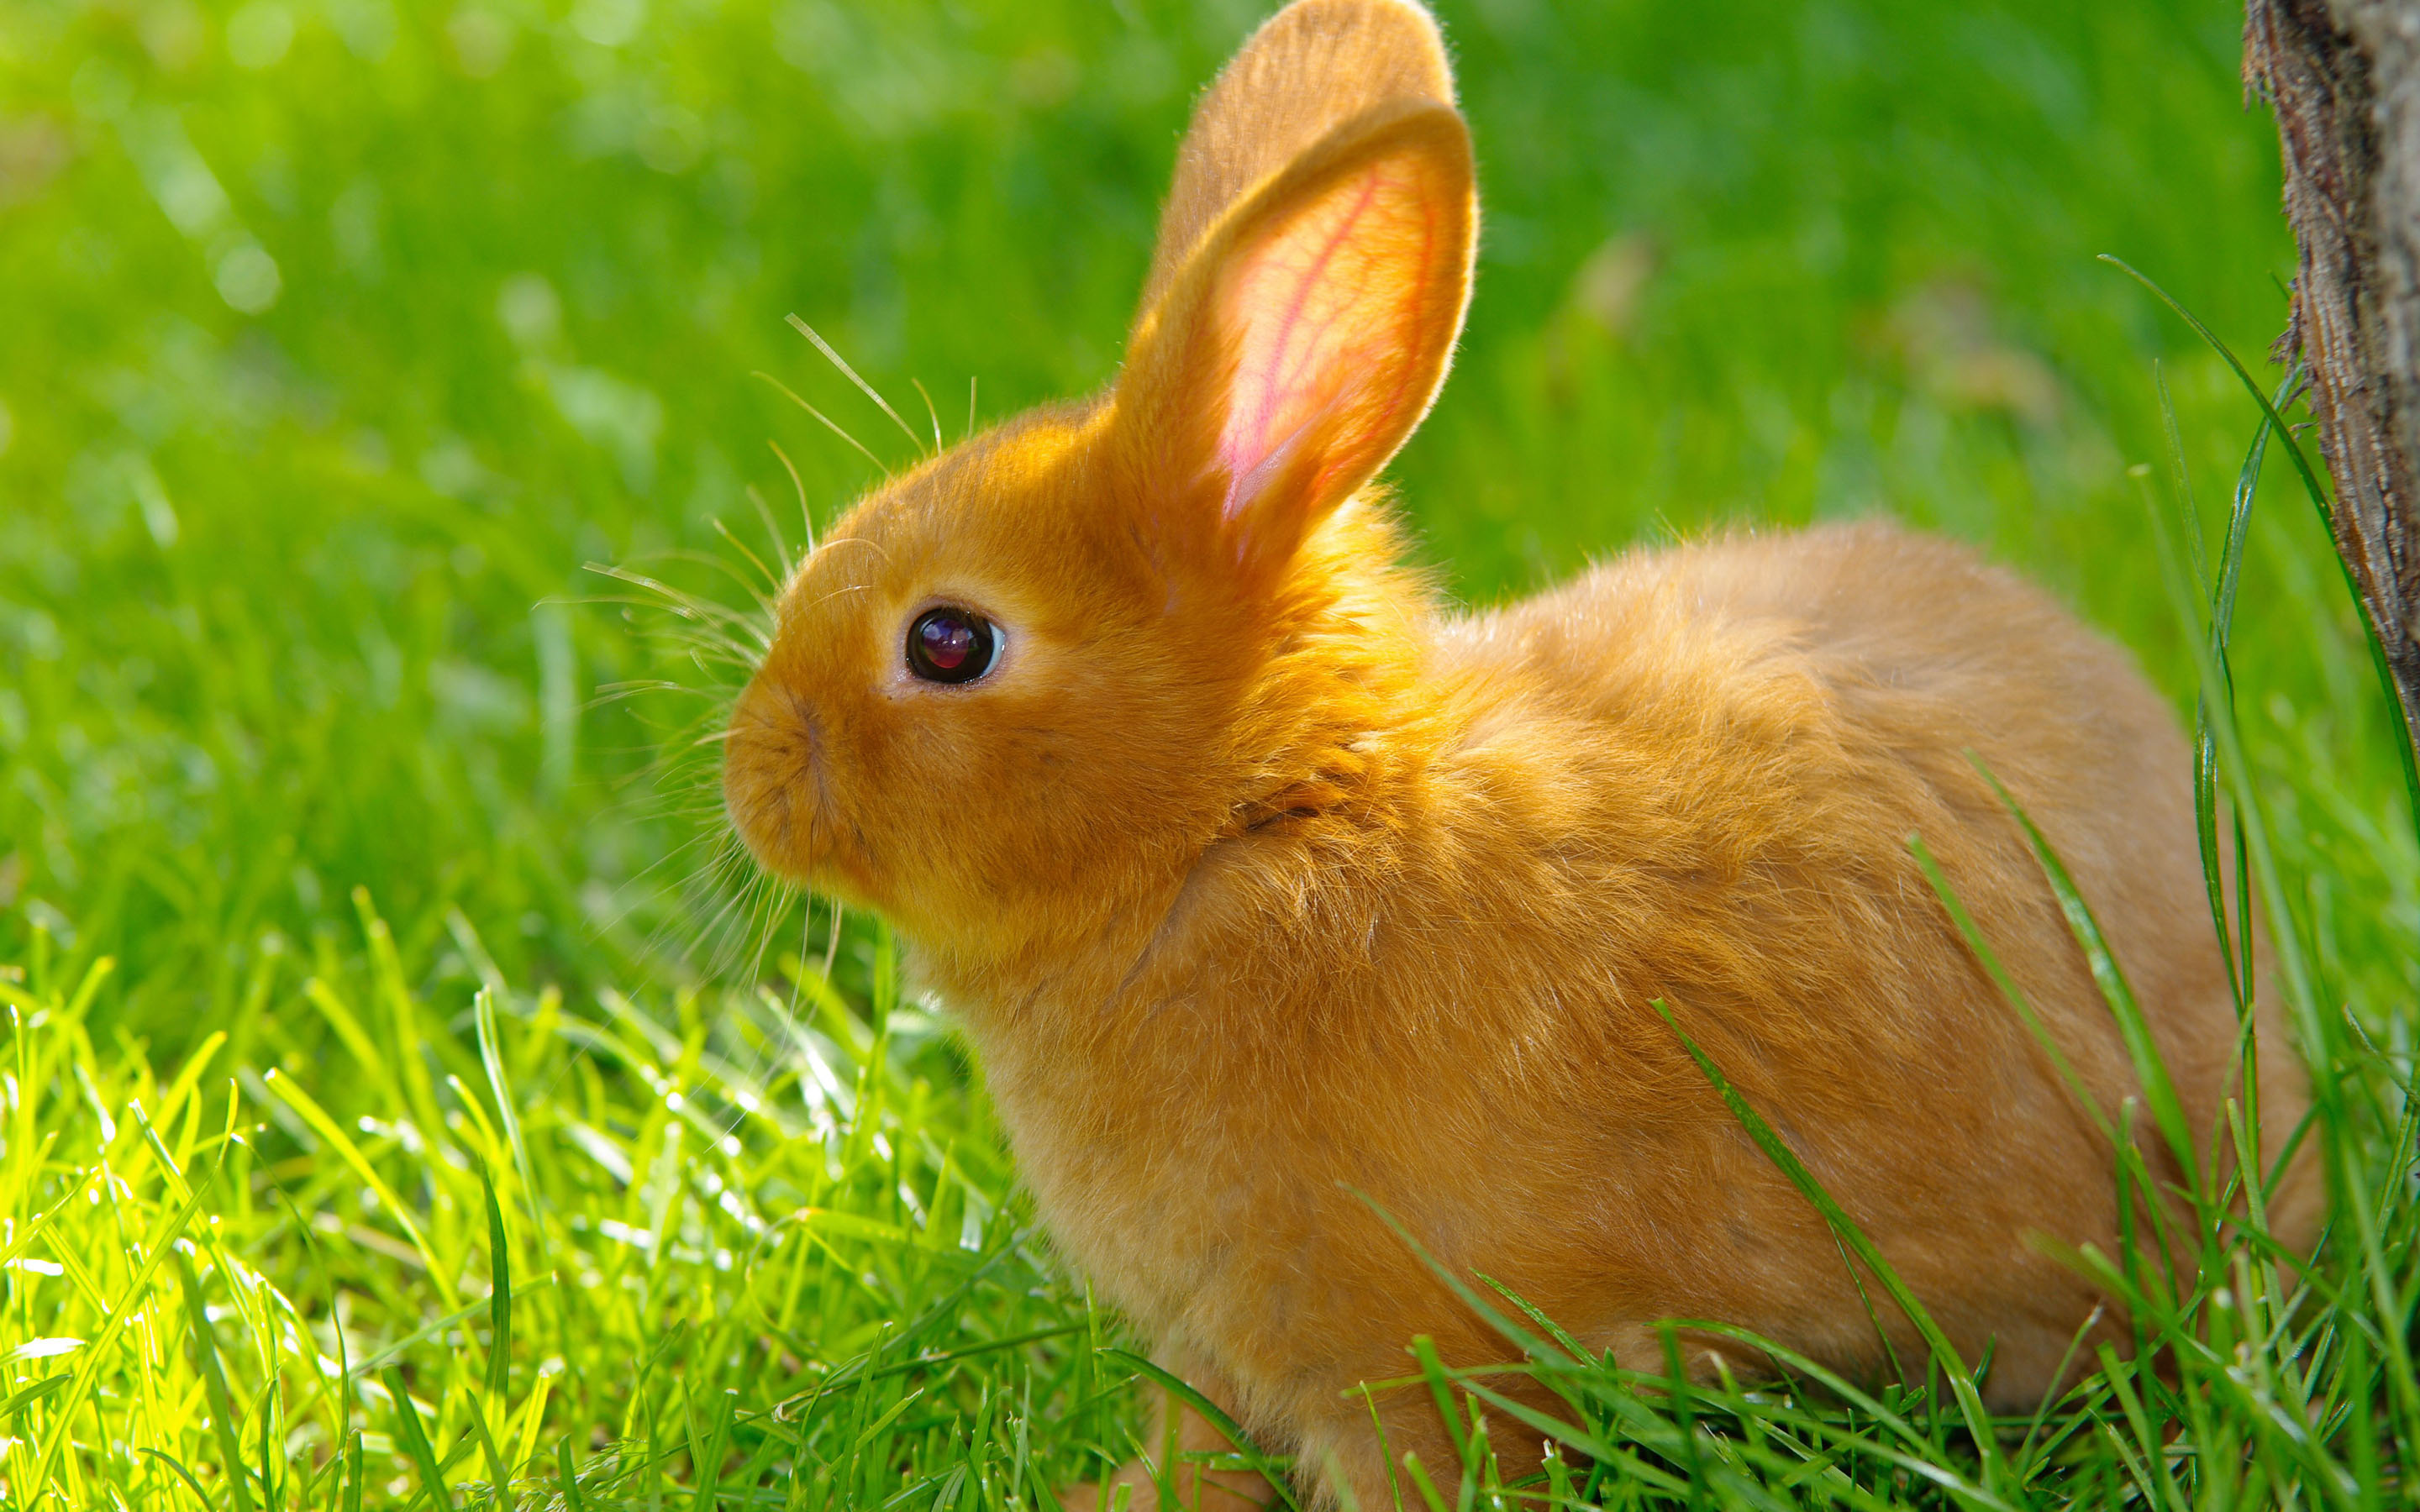 Free for commercial use high quality images Download Cute Baby Rabbits Wallpapers Gallery